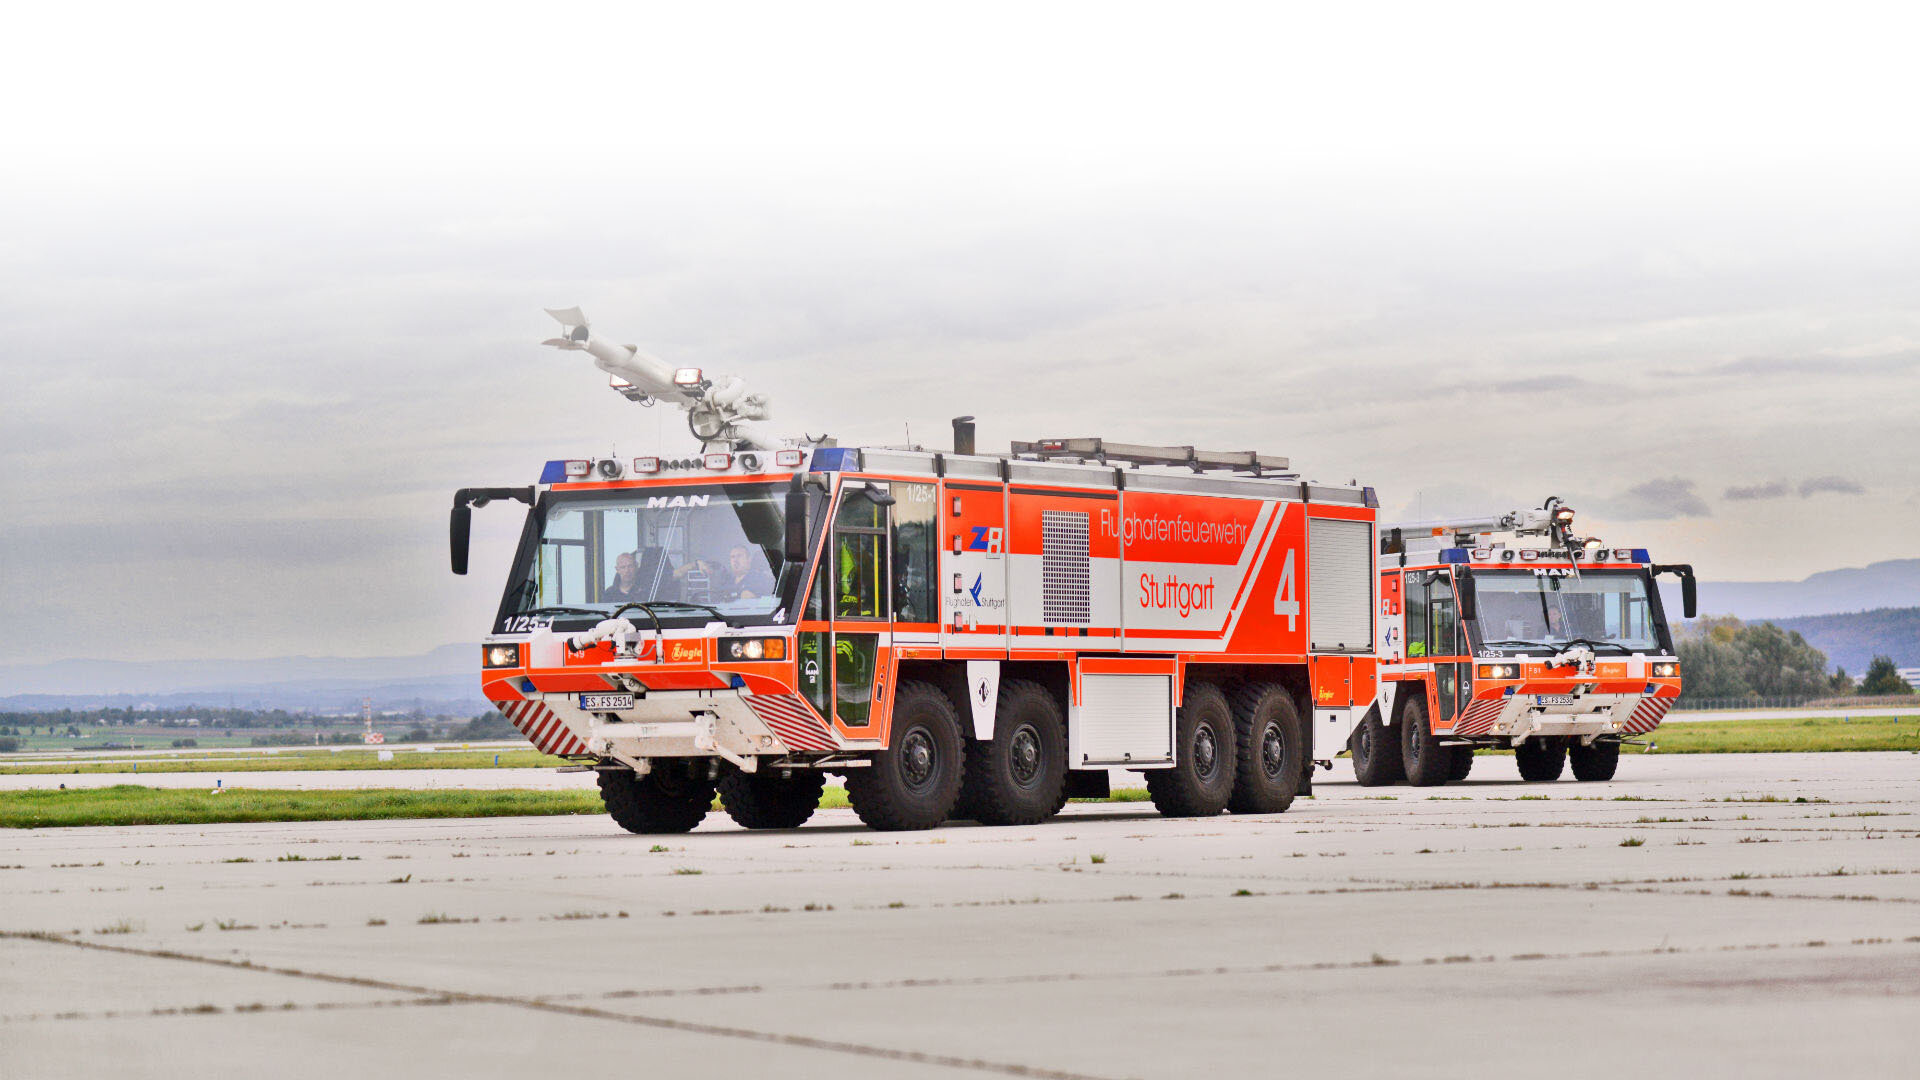 Airport Fire Service in Stuttgart